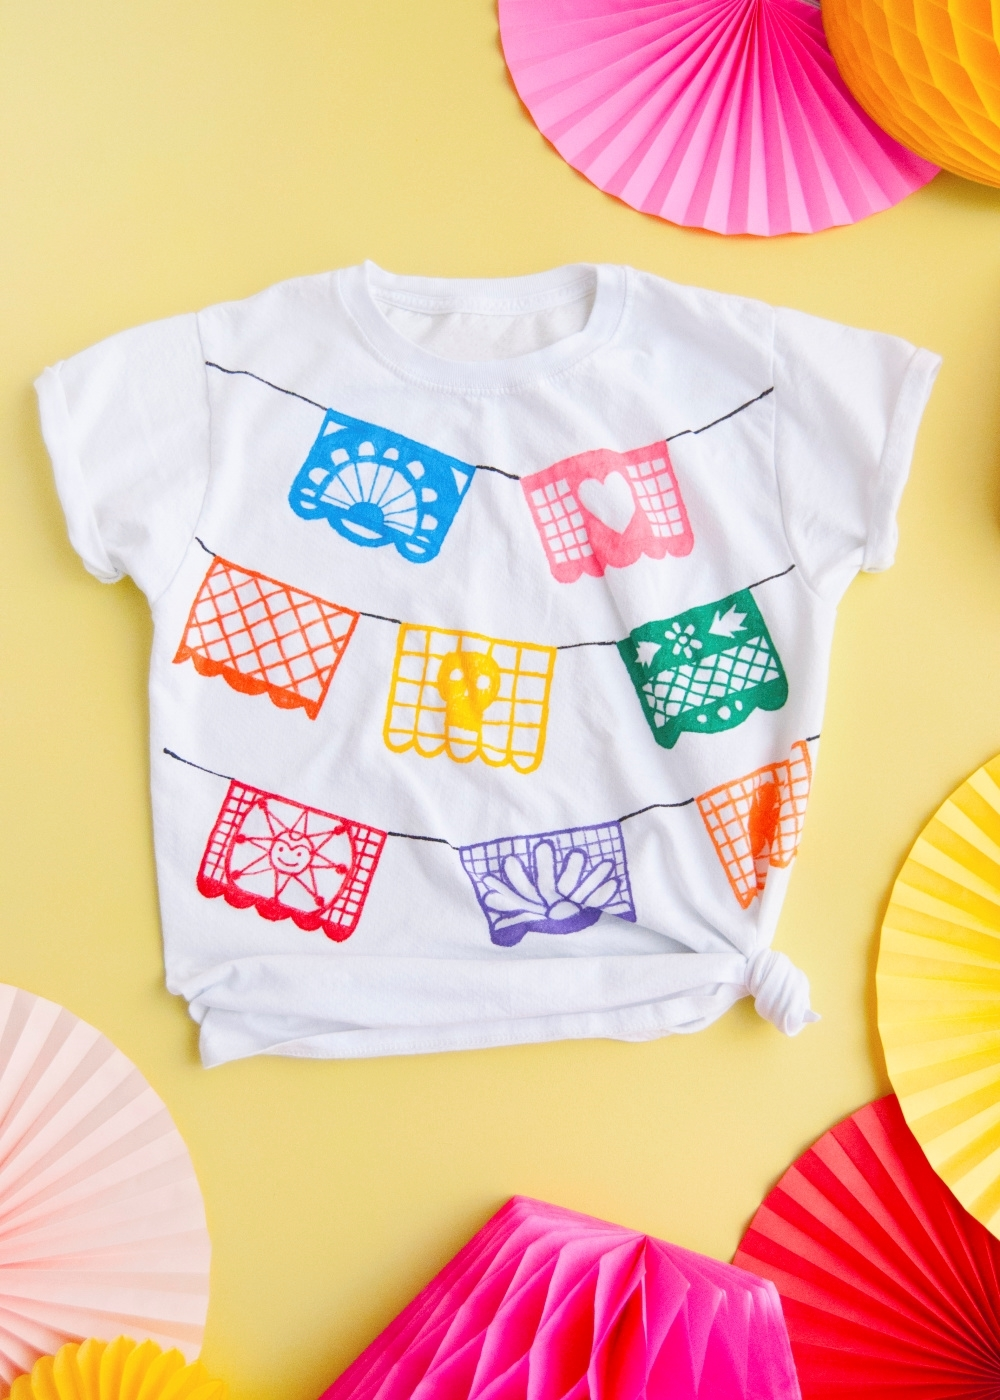 Picture of Tulip Fabric Markers DIY Papel Picado T-shirt